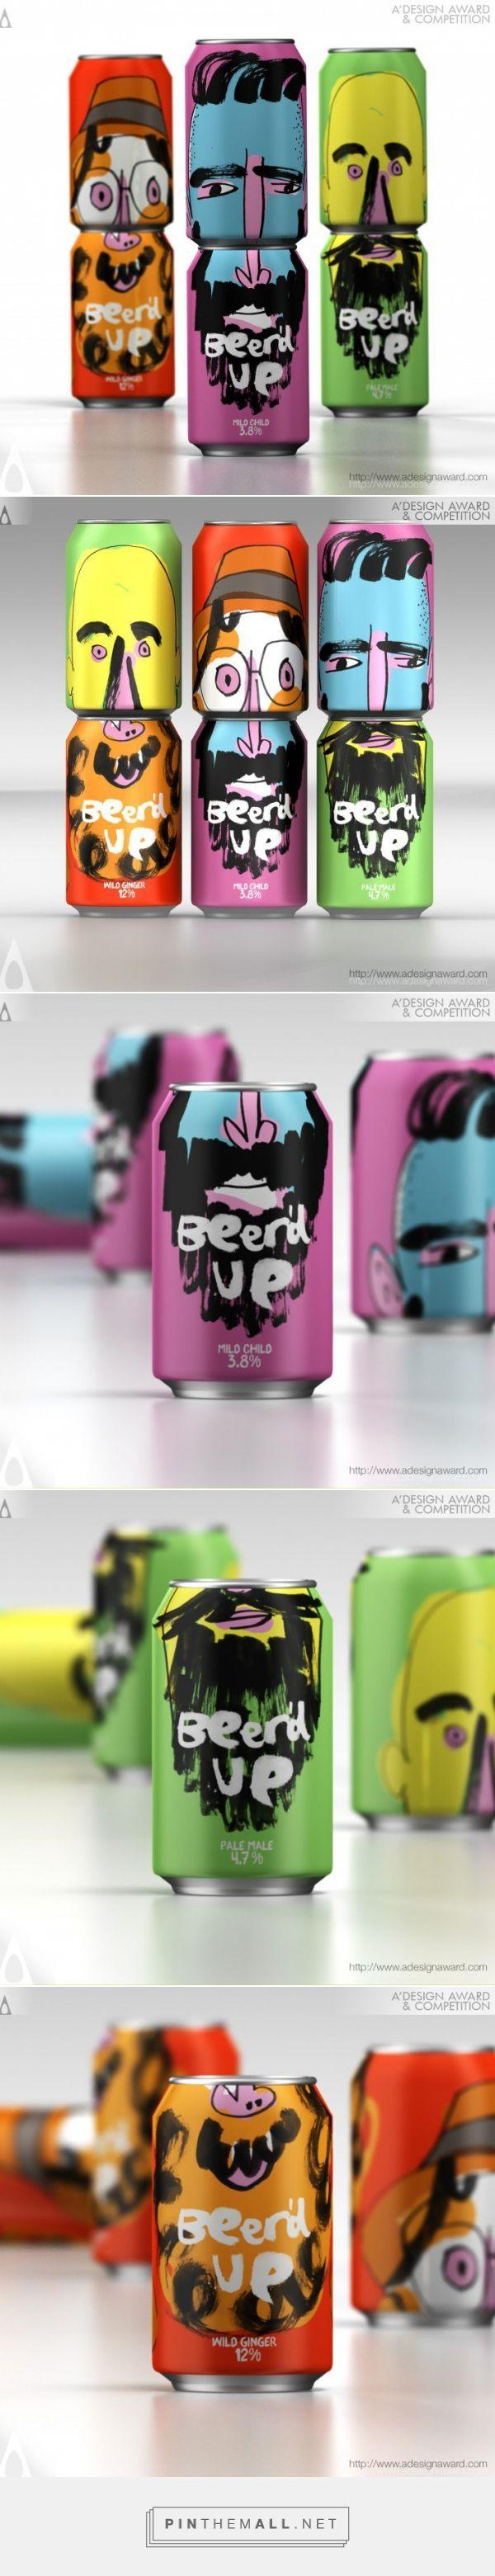 Свадьба - A' Design Award And Competition - Images Of Beer'd Up By Springetts Brand Design Consultants... - A Grouped Images Picture